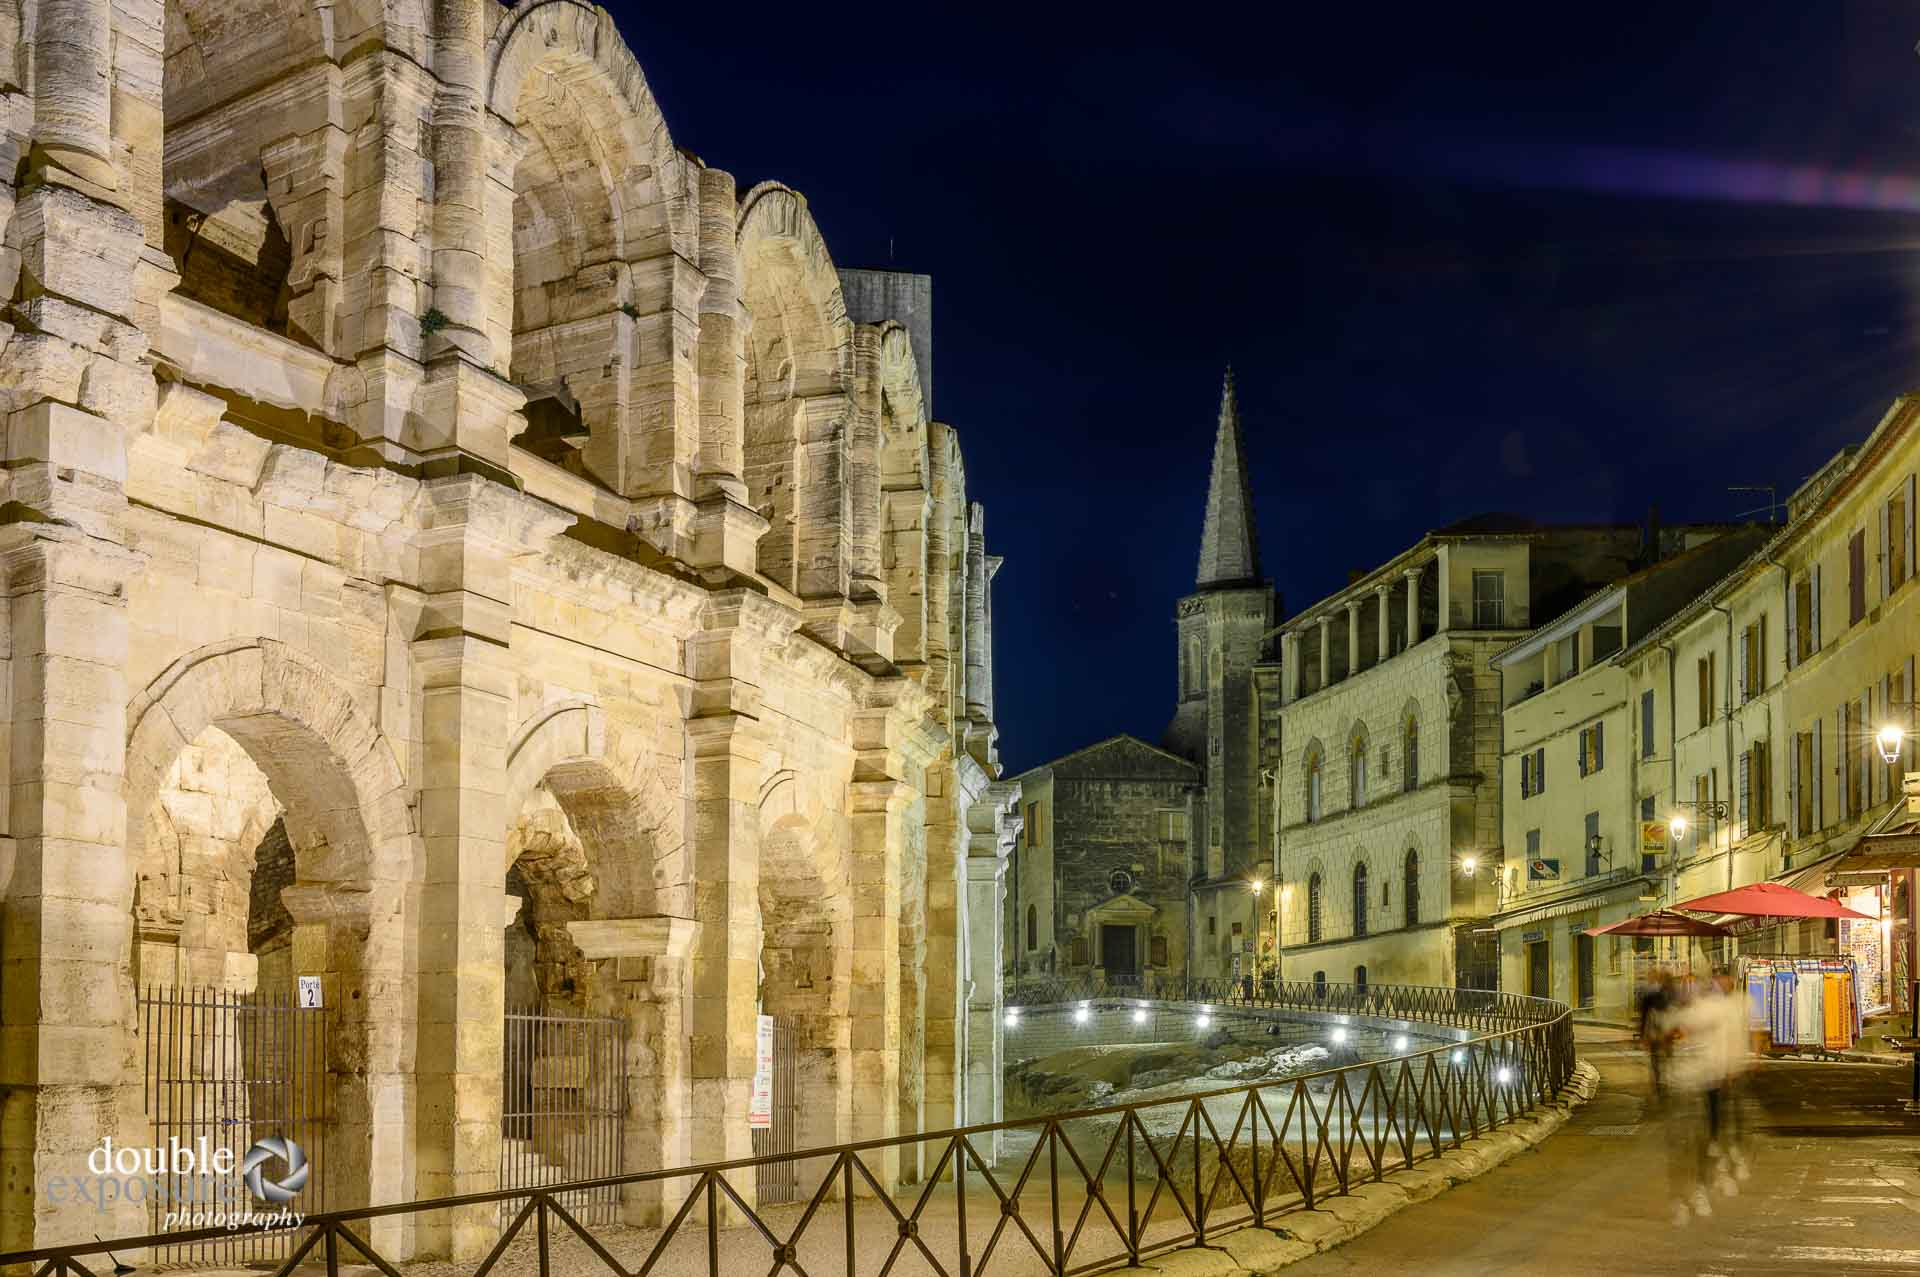 Arles amphitheatre is still in use today